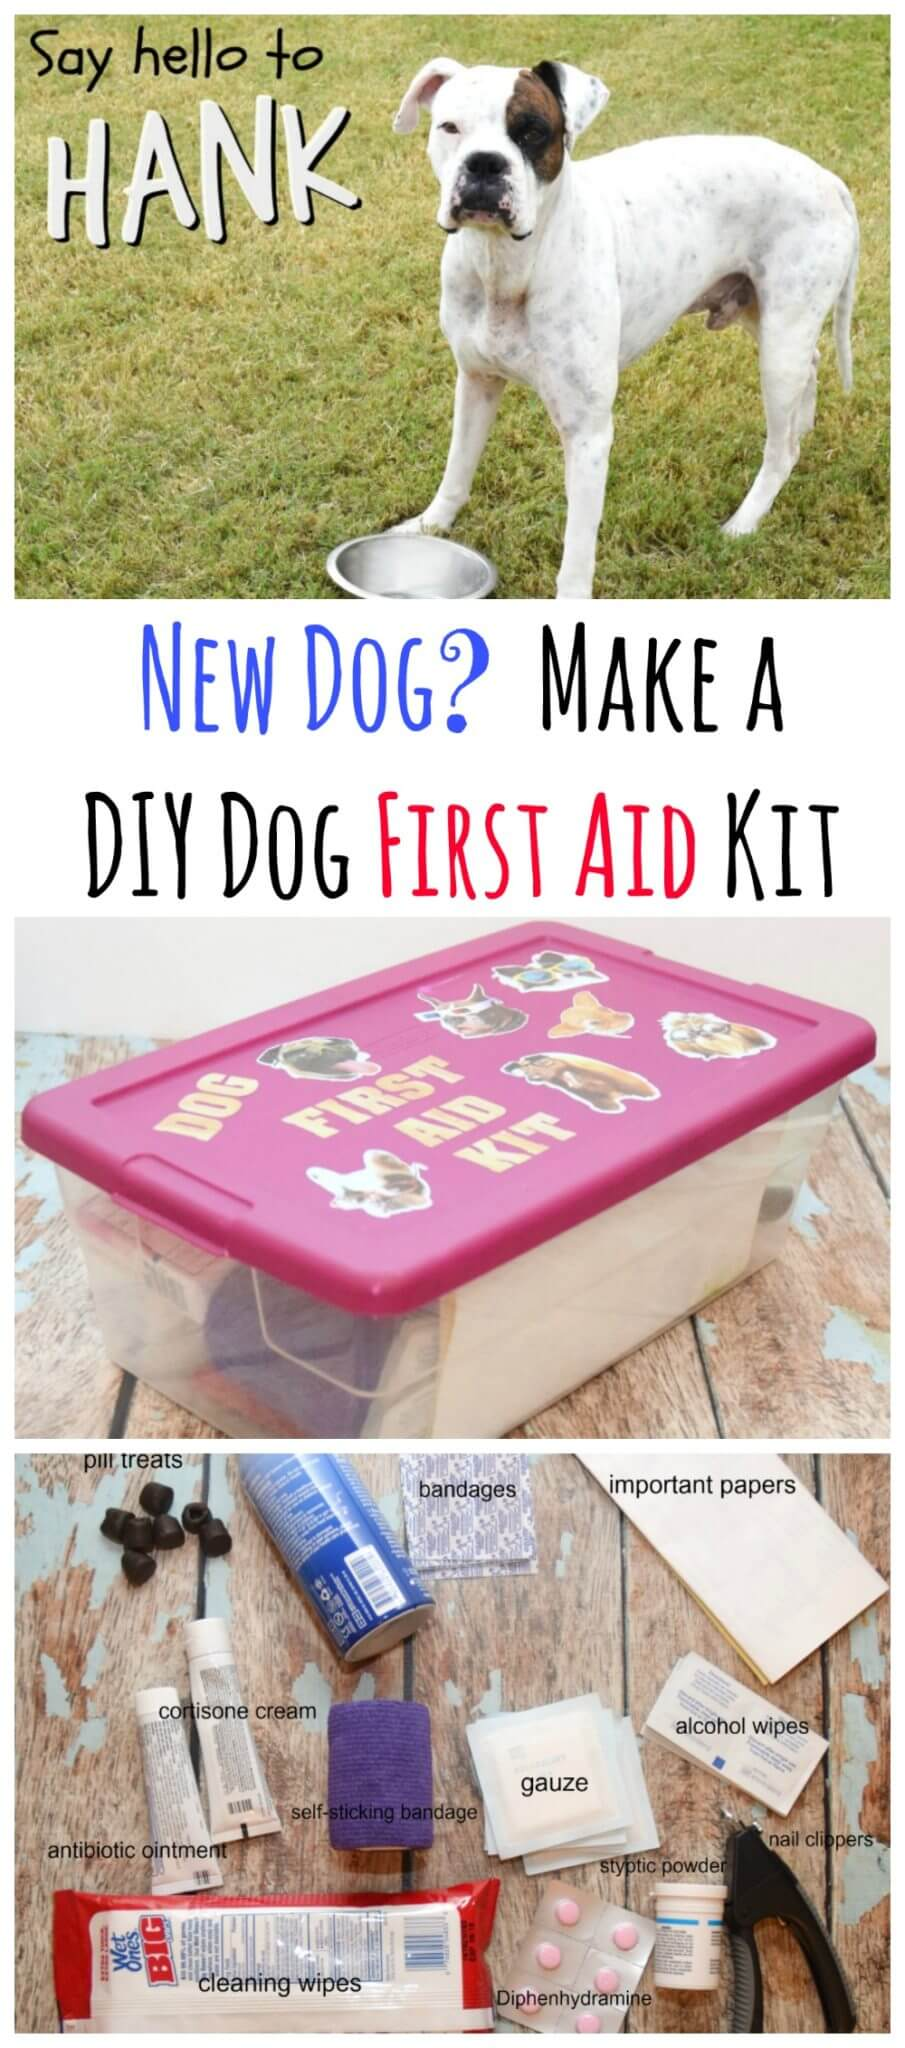 New Dog & DIY Dog First Aid Kit | The TipToe Fairy